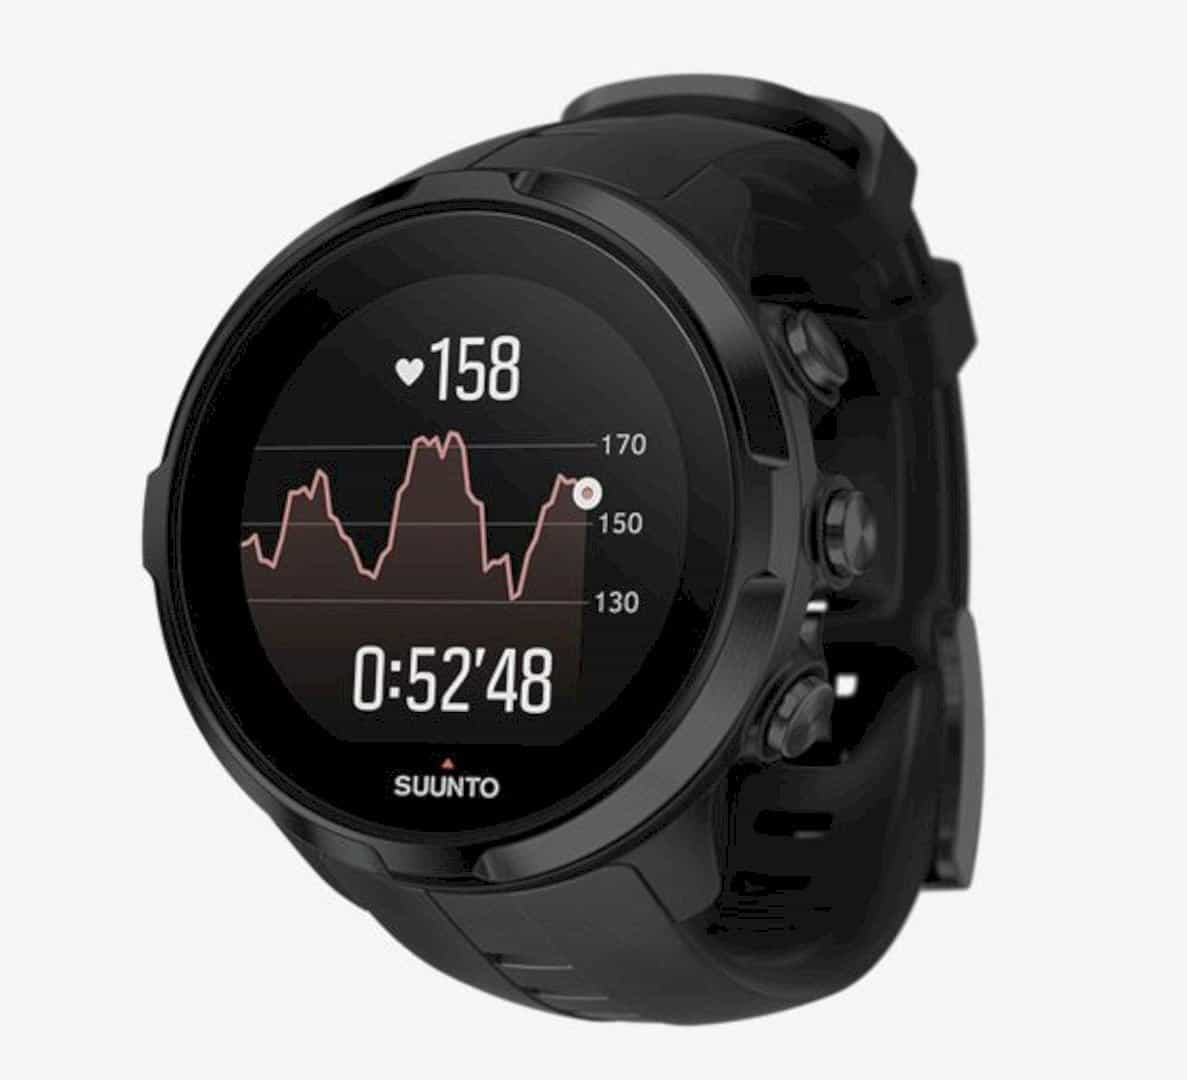 Suunto Spartan Sport Wrist HR: Robust Multisport GPS Watch